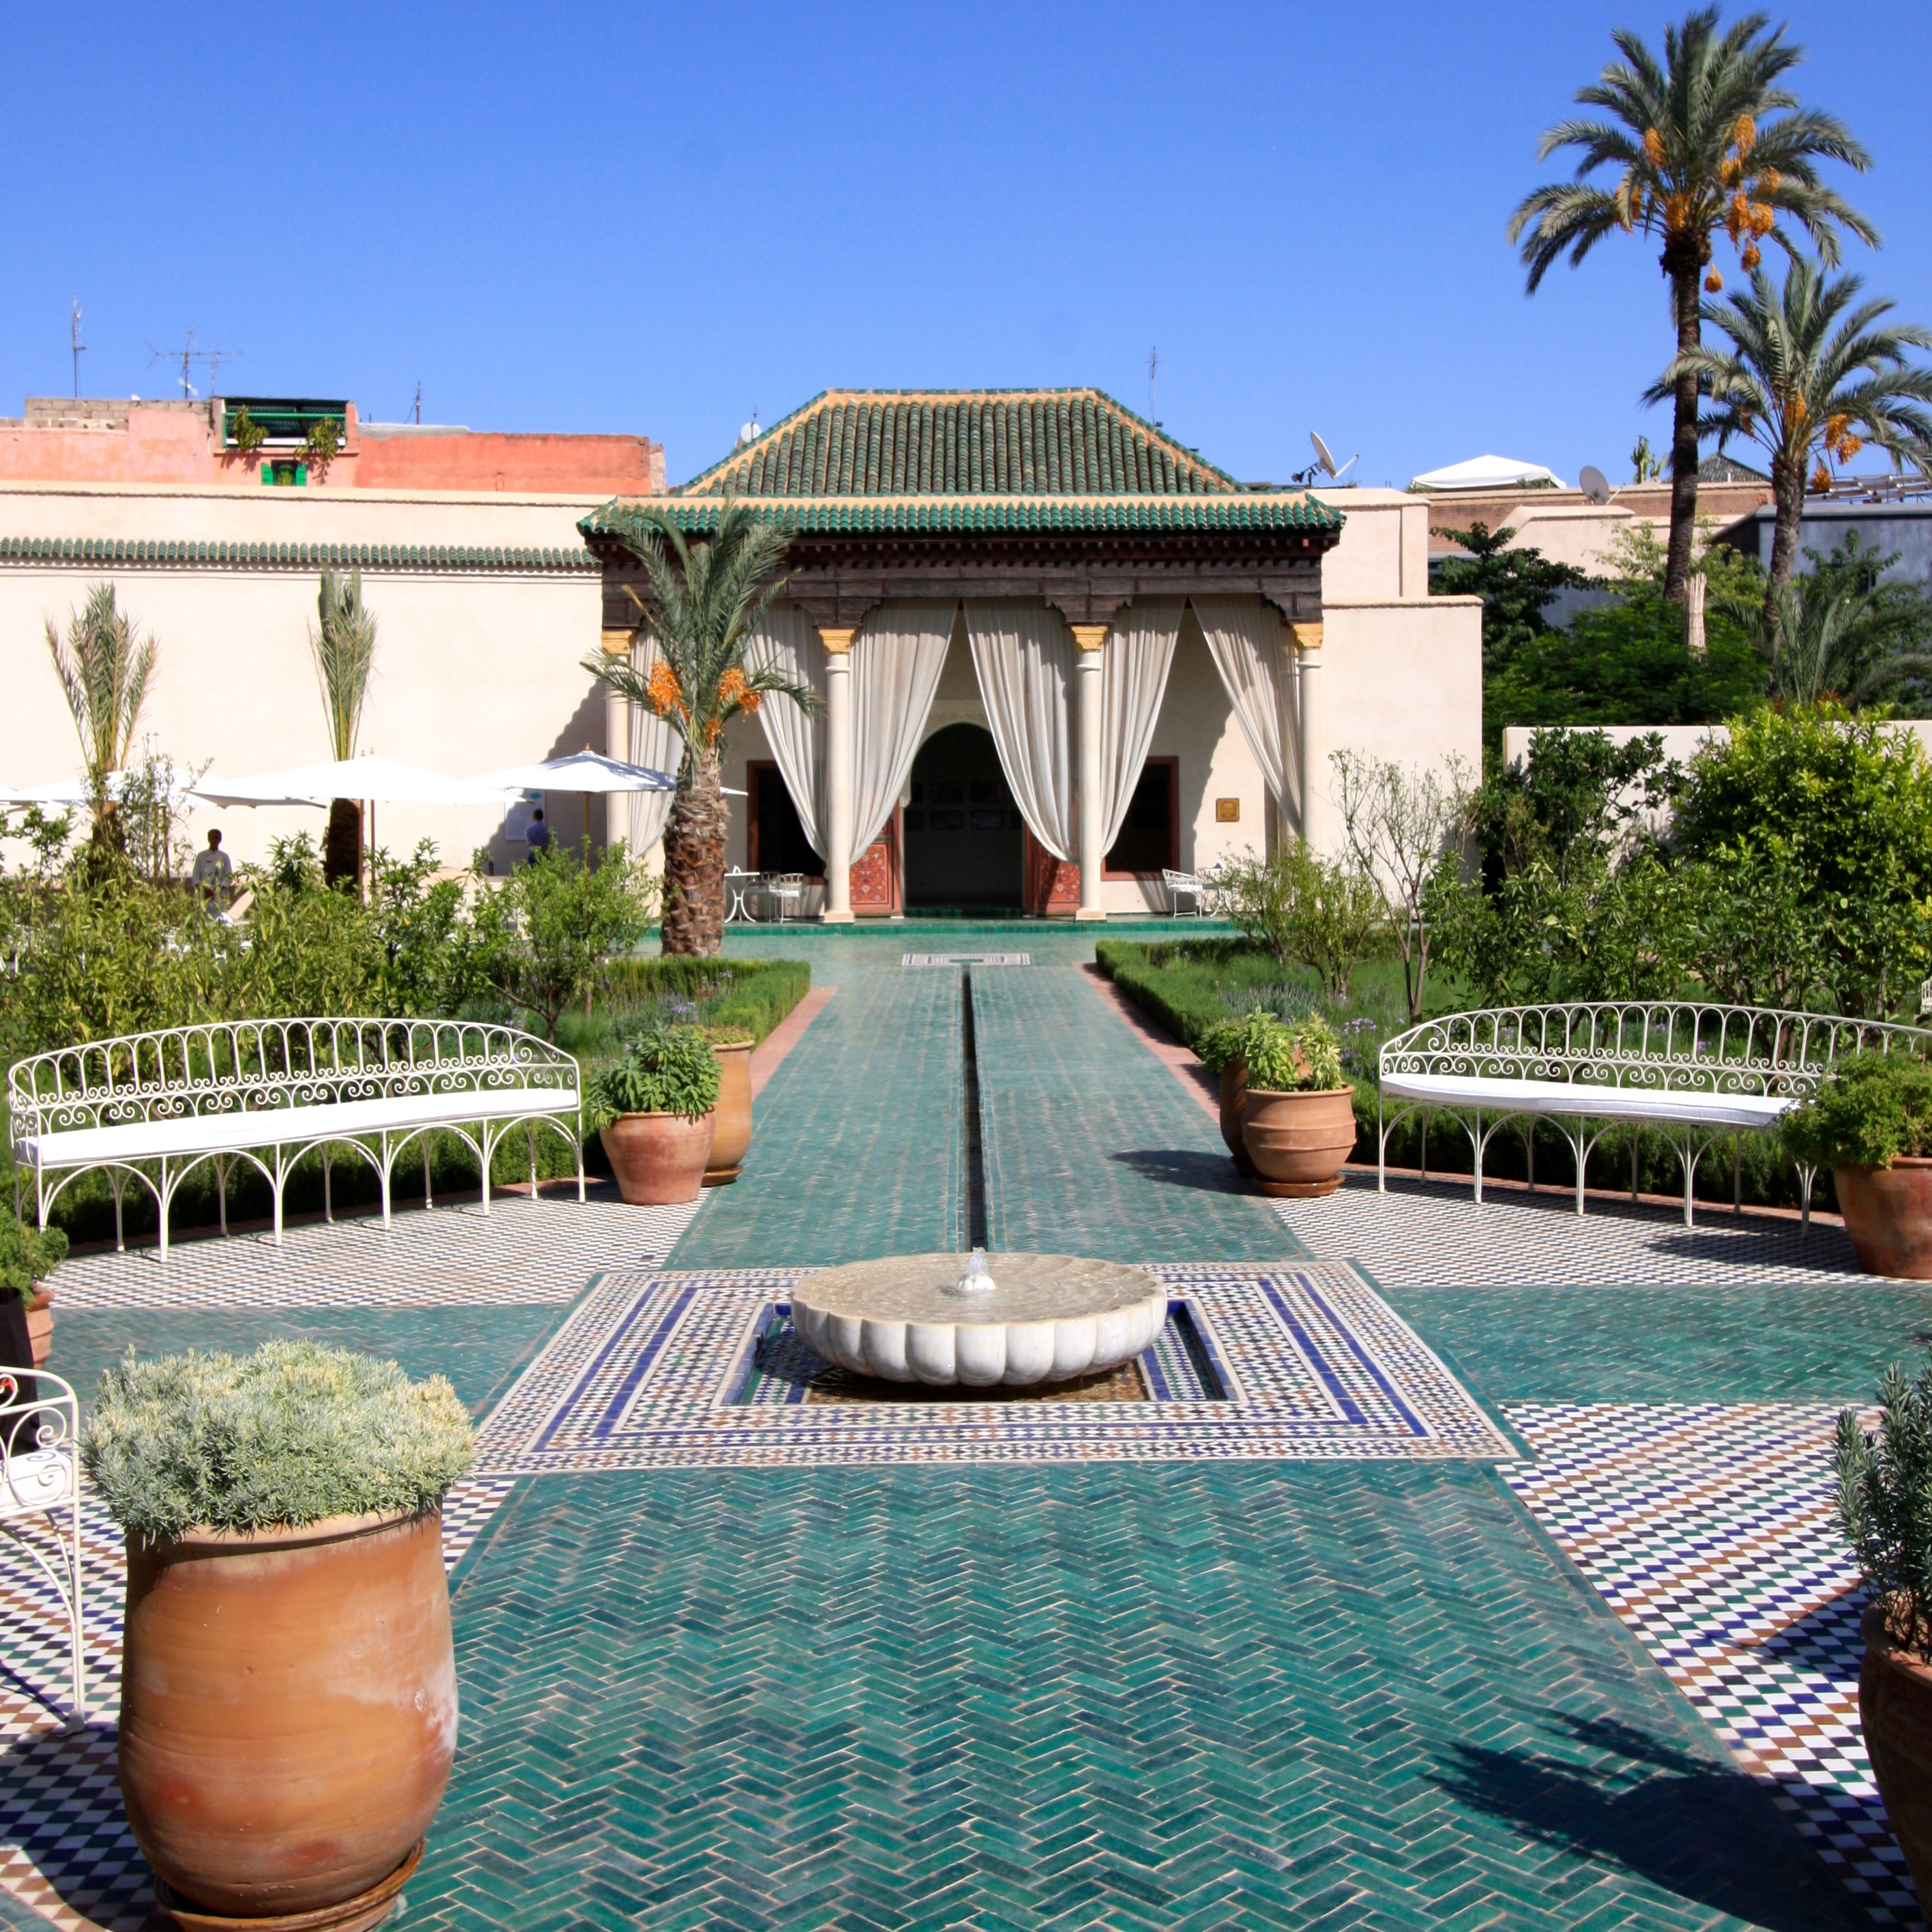 Le jardin secret marrakech the frustrated gardener for Anahy jardin secret